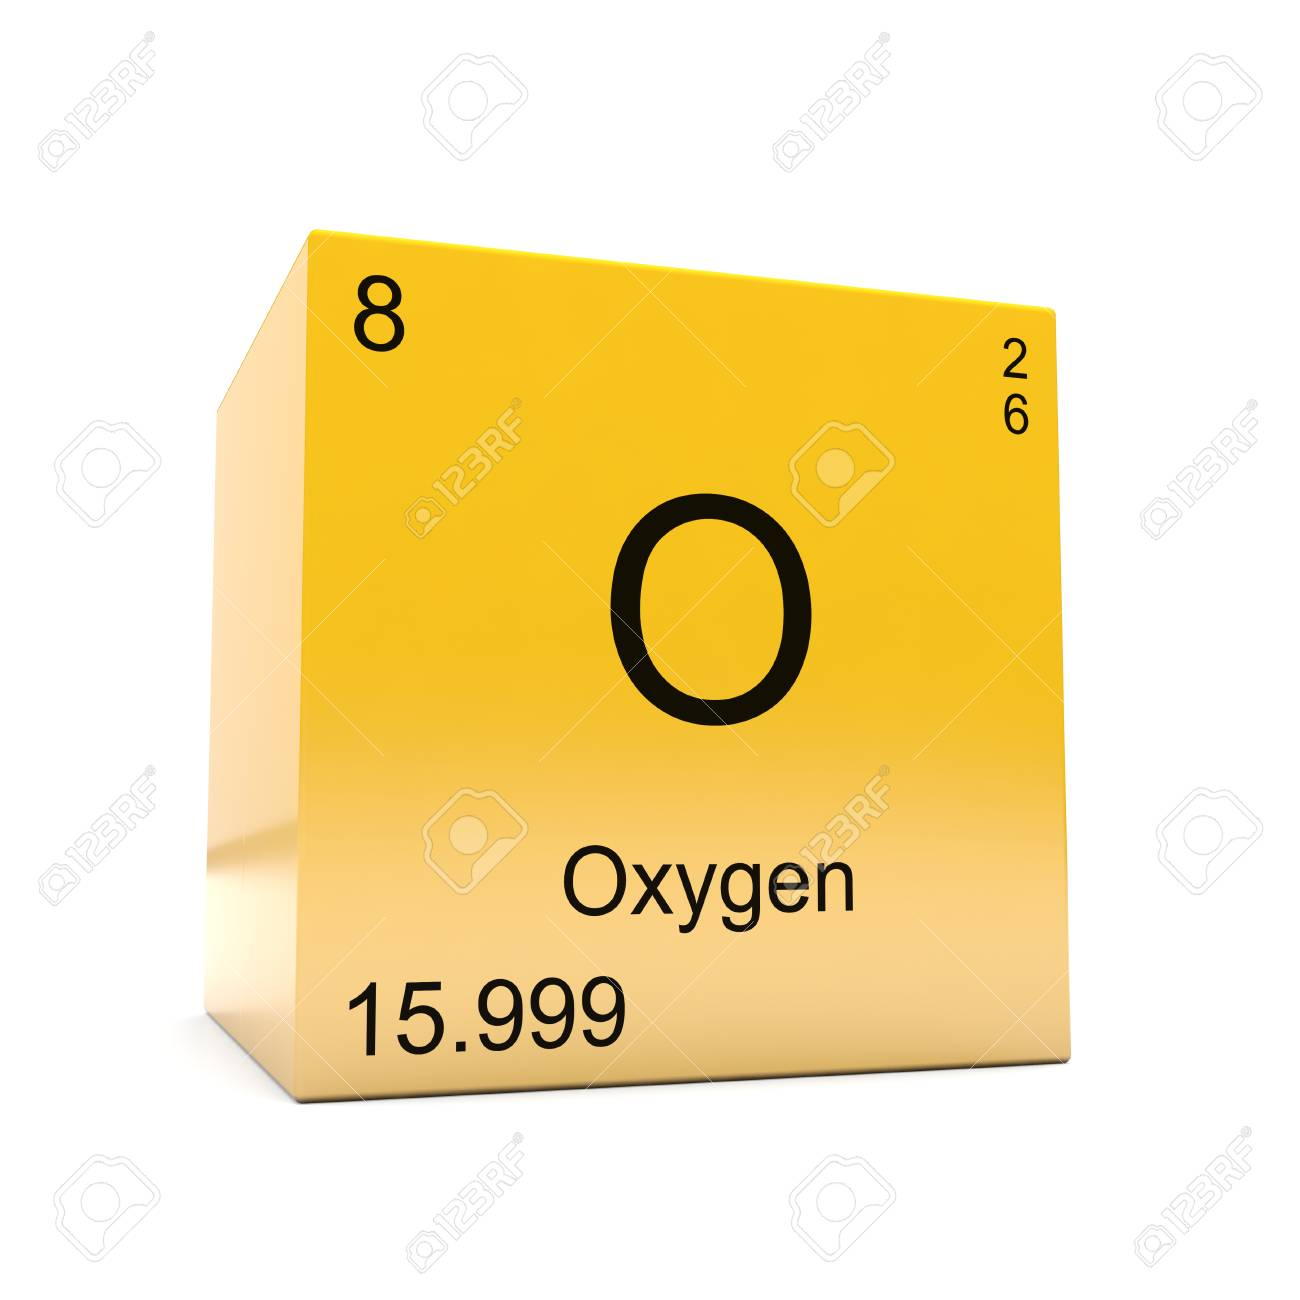 Oxygen chemical element symbol from the periodic table displayed oxygen chemical element symbol from the periodic table displayed on glossy yellow cube stock photo urtaz Gallery